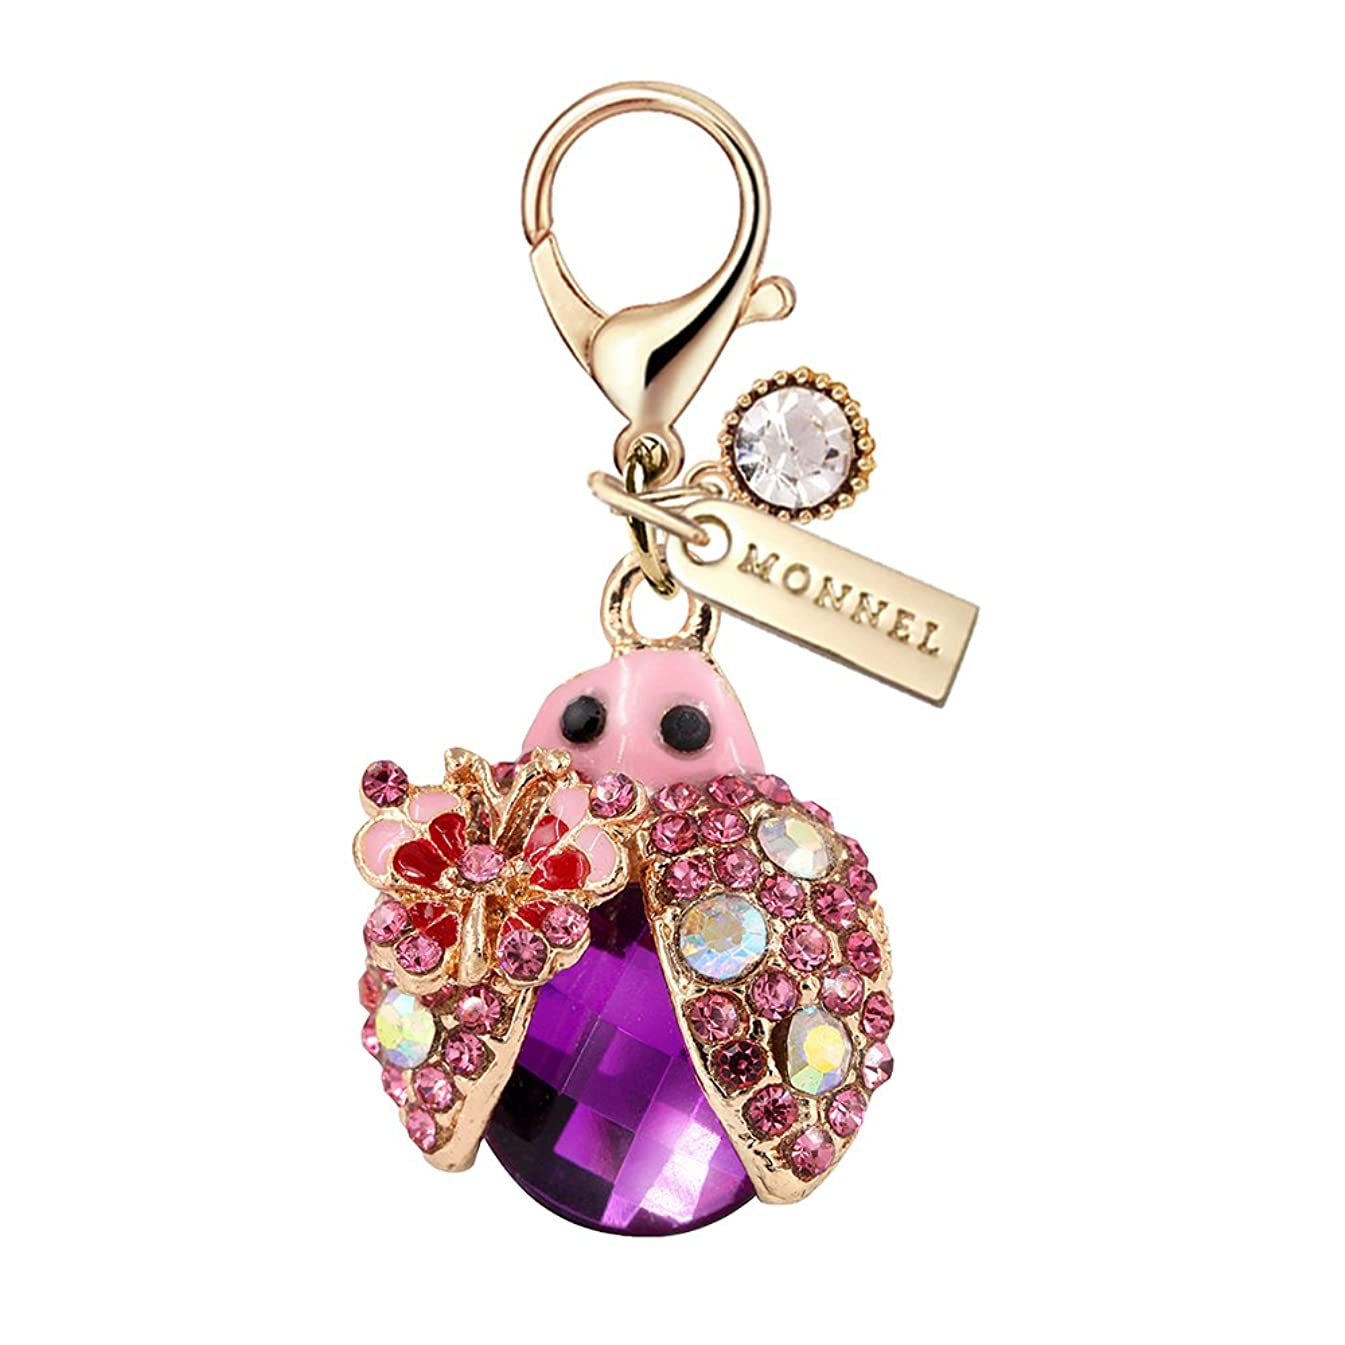 MC44 New Arrival Cute 3D Purple Crystal Big Ladybug Lobster Clasp Charms Pendants with Pouch Bag (1 Piece)